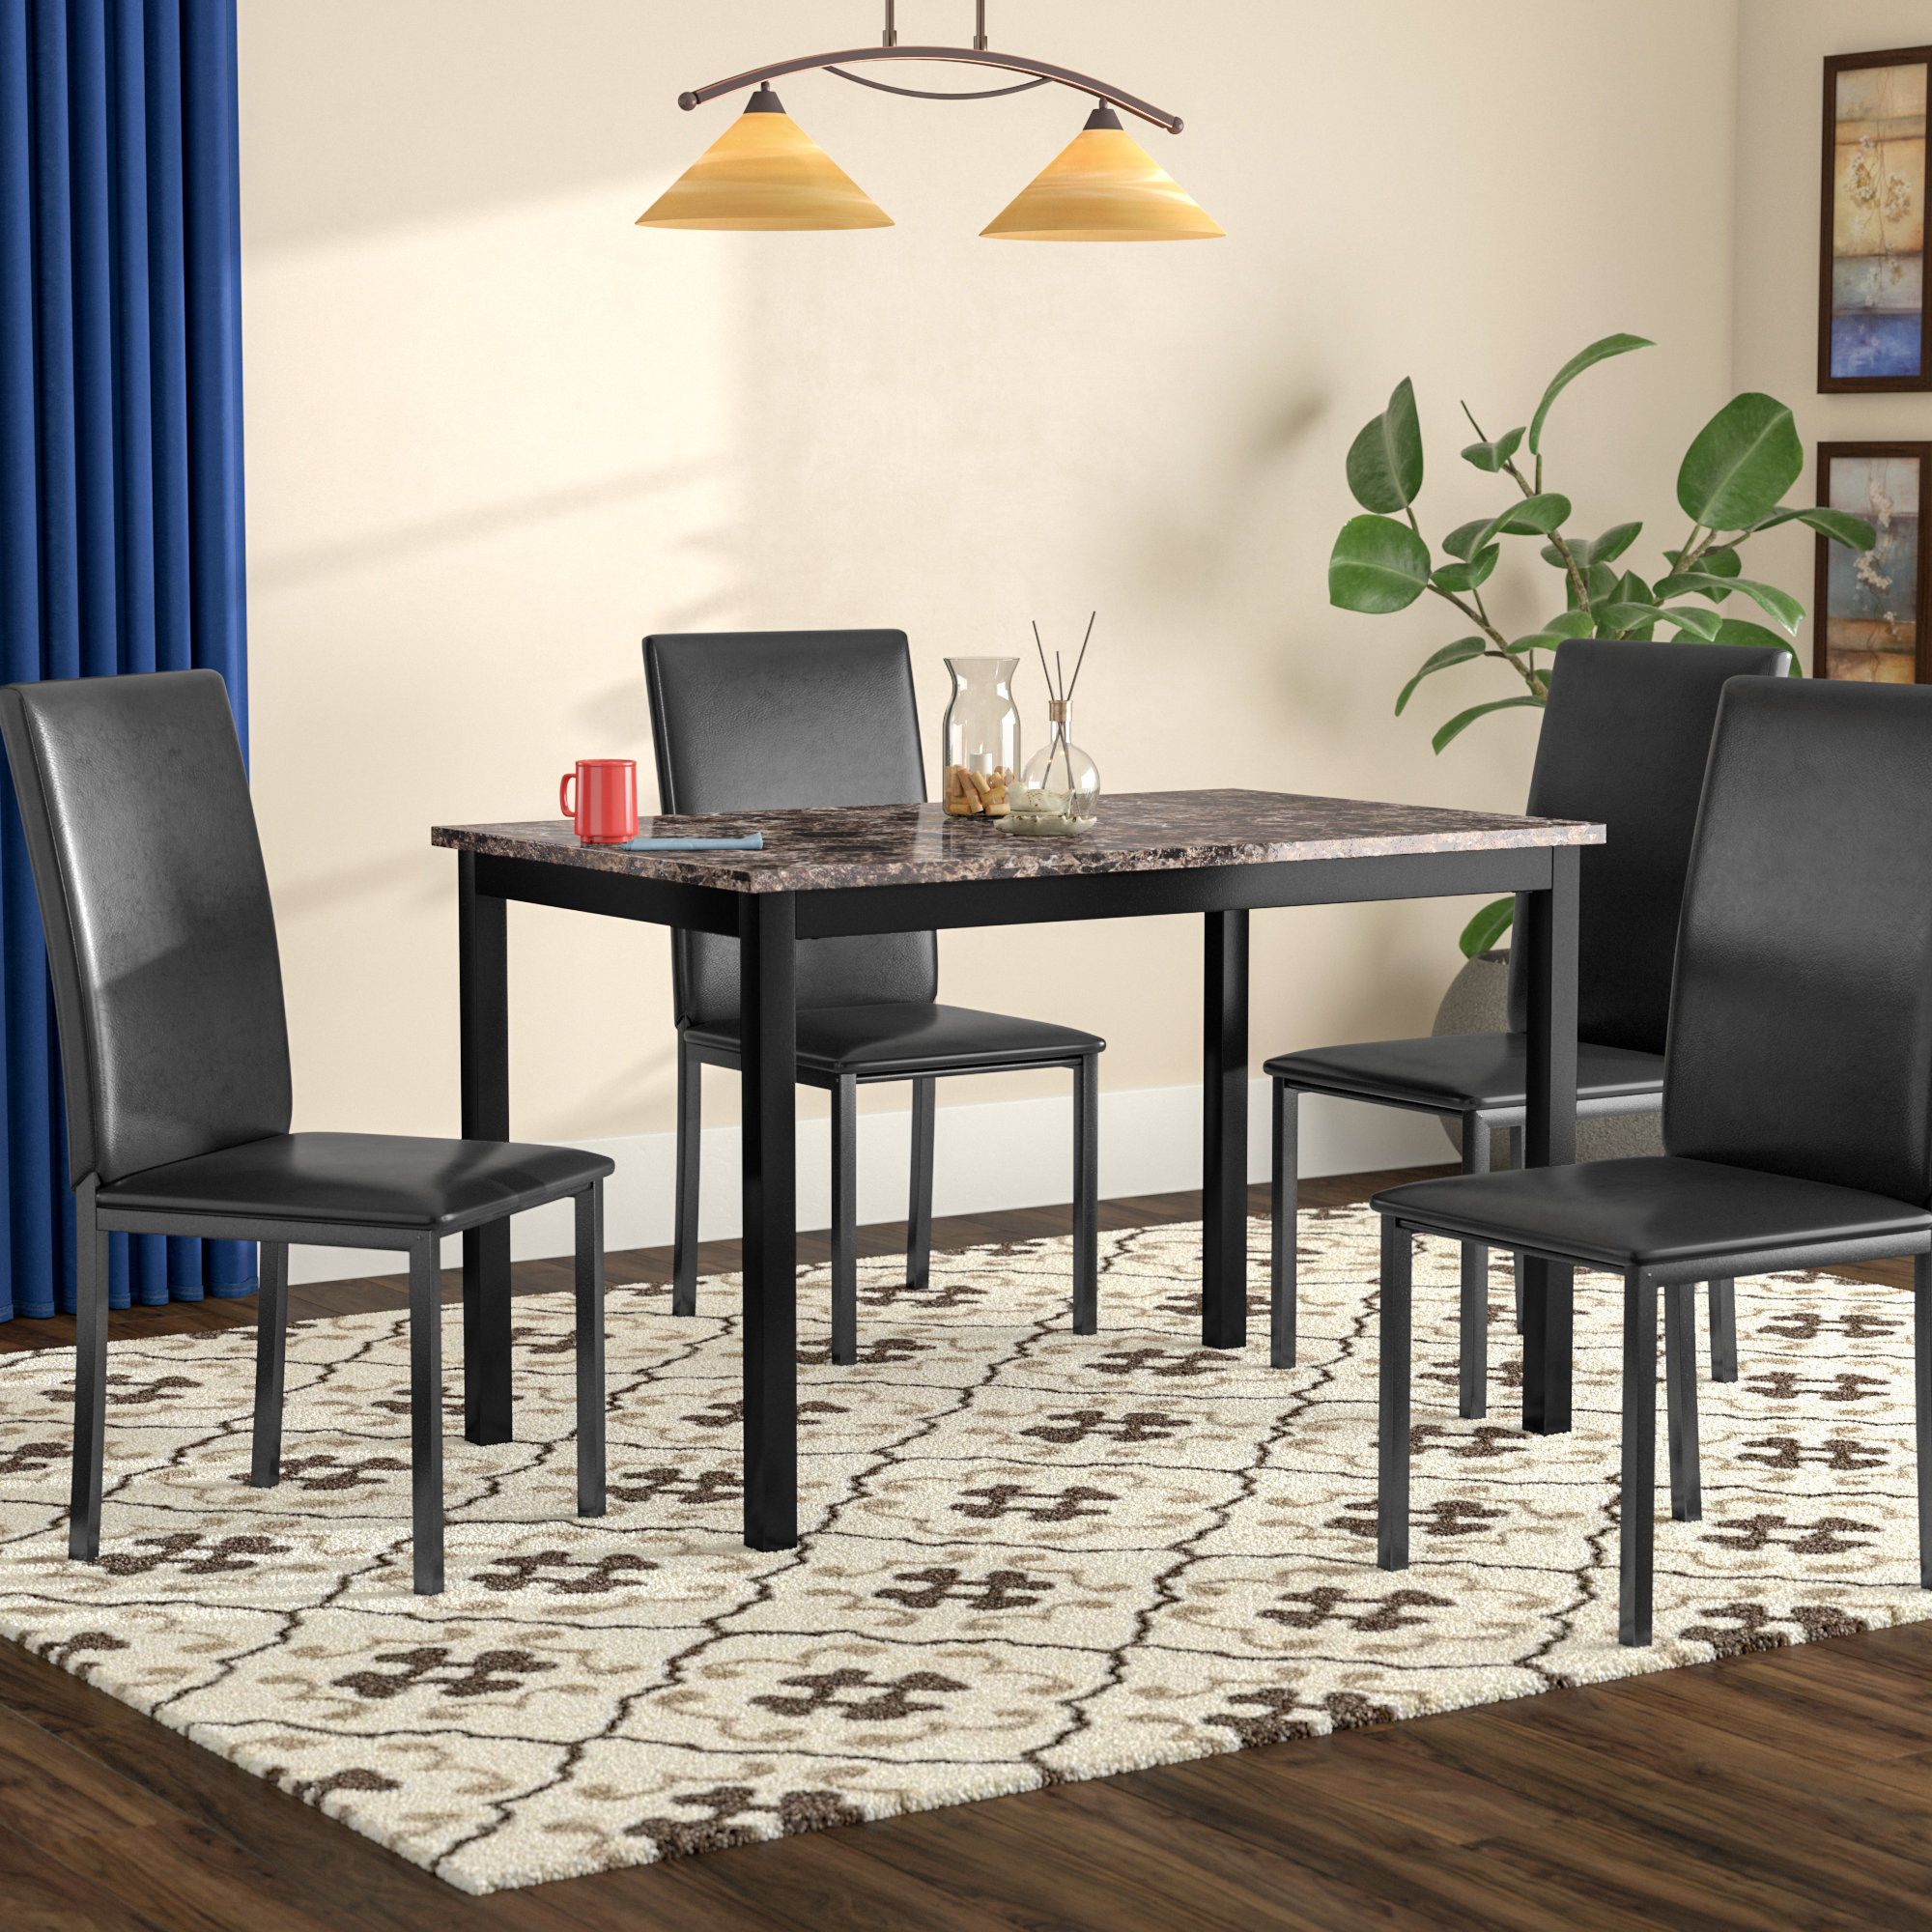 Red Barrel Studio Noyes 5 Piece Dining Set & Reviews | Wayfair With Regard To Newest Anette 3 Piece Counter Height Dining Sets (View 19 of 20)